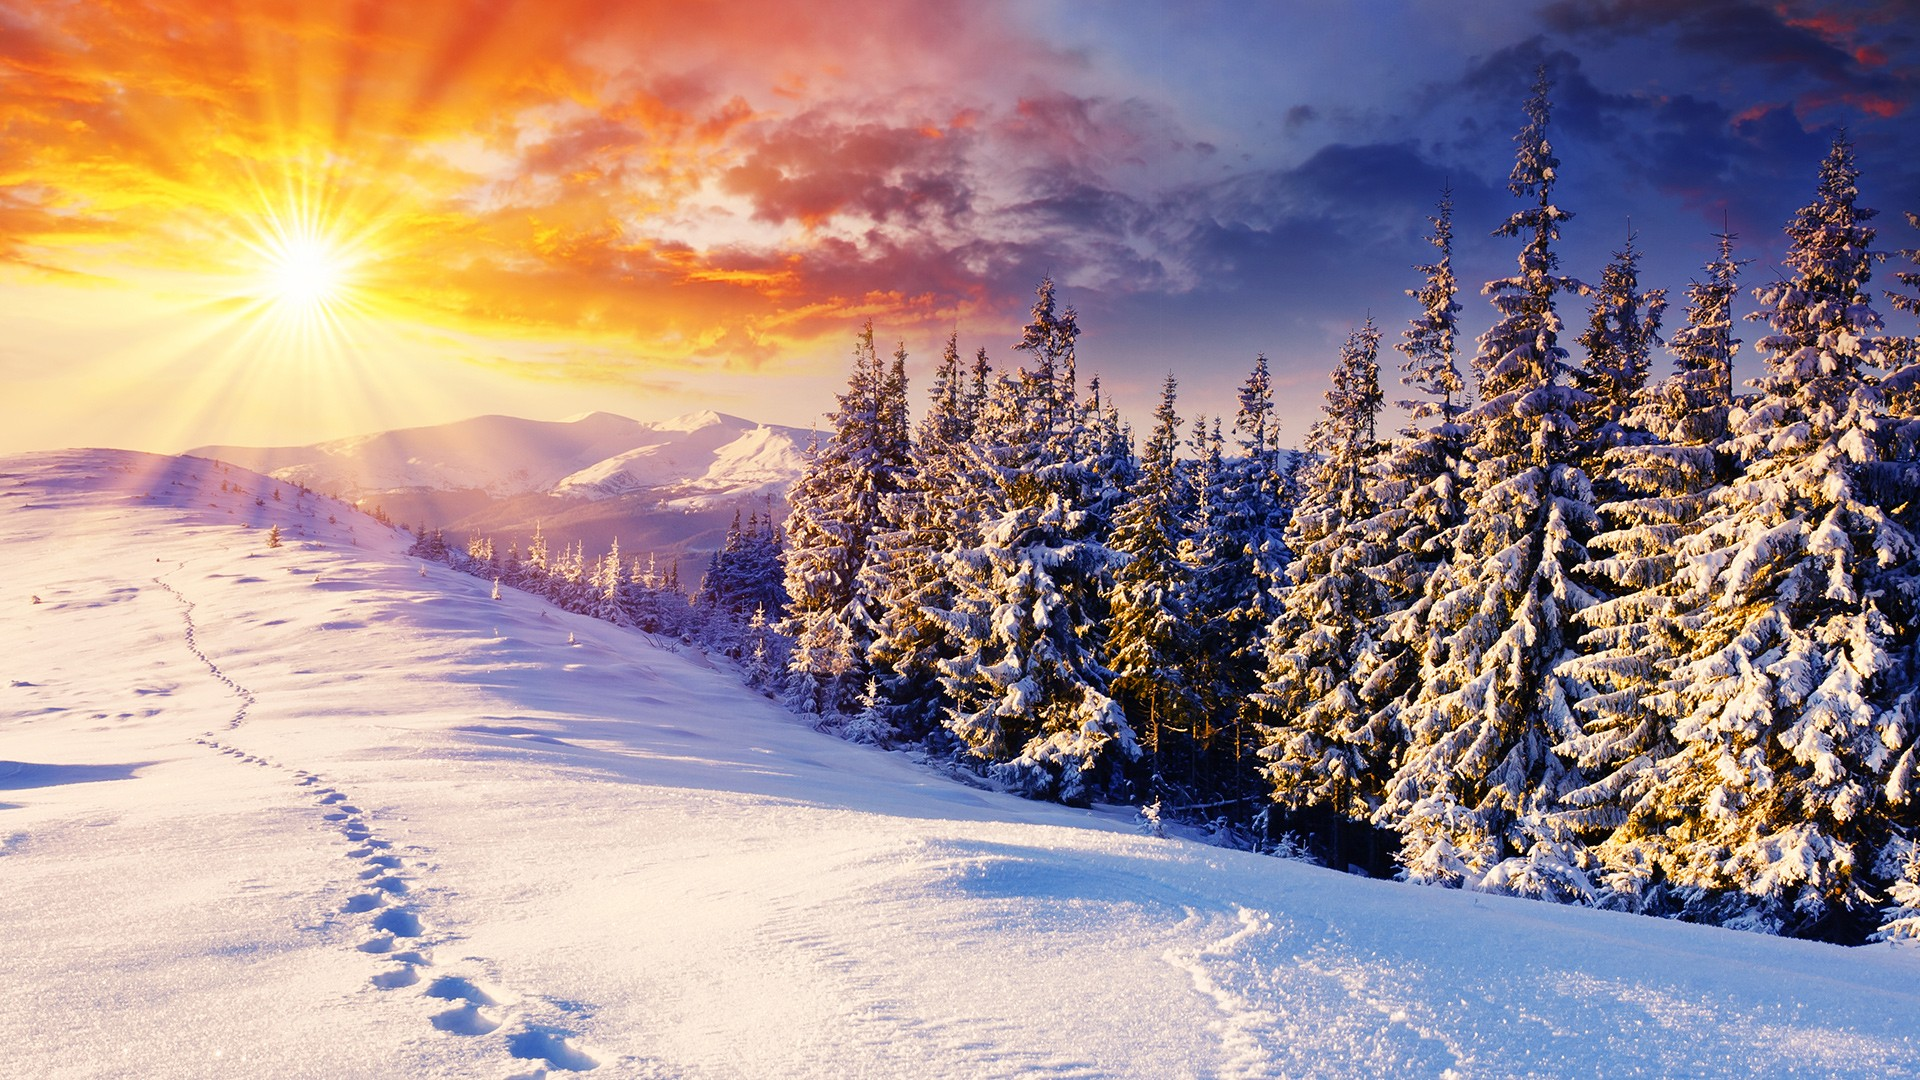 398689-best-winter-wallpapers-1920x1080-high-resolution.jpg